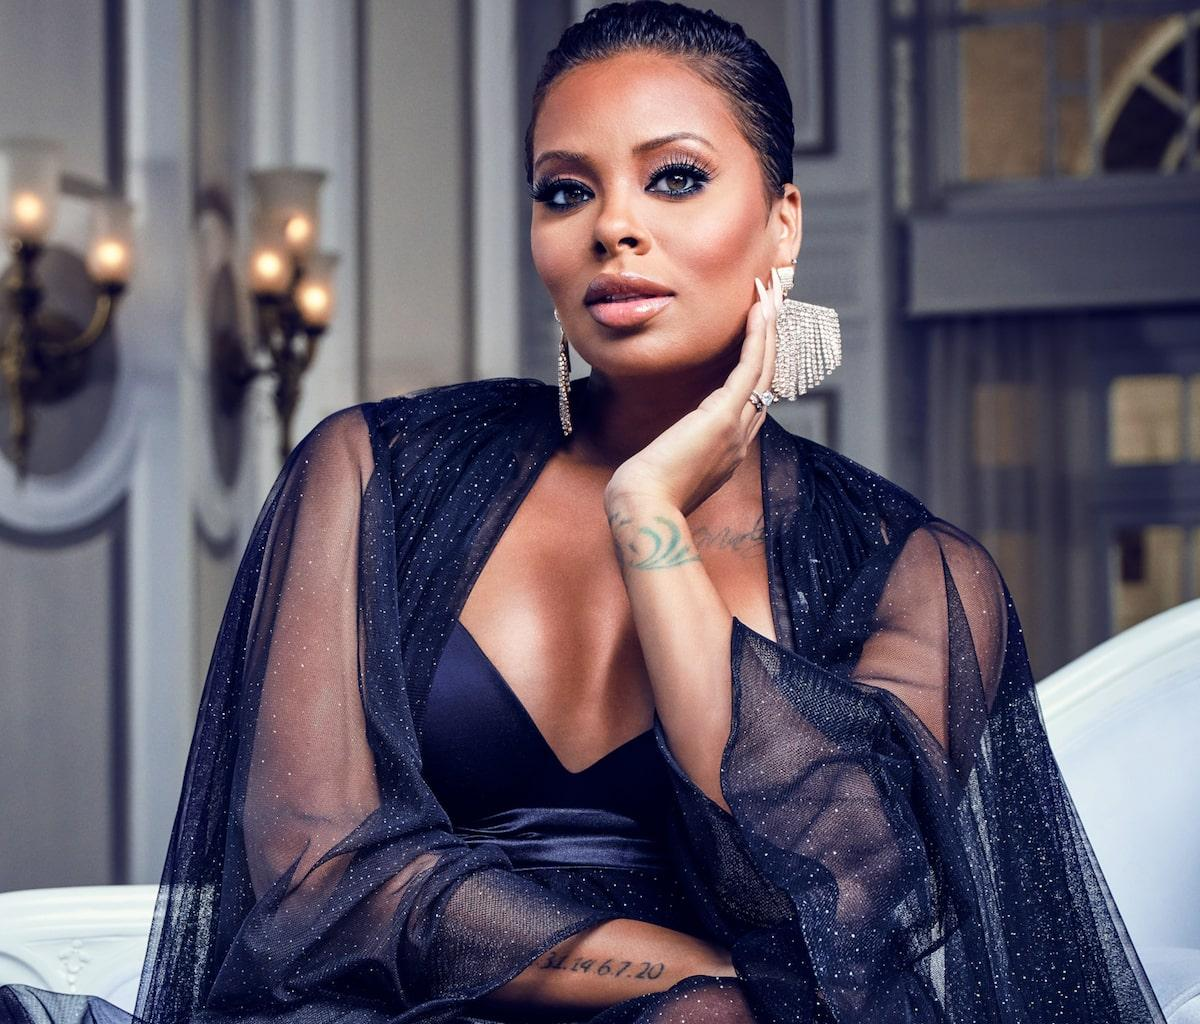 Eva Marcille Is Having The Time Of Her Life At The Beach - See The Jaw-Dropping Video Of The Gorgeous Location